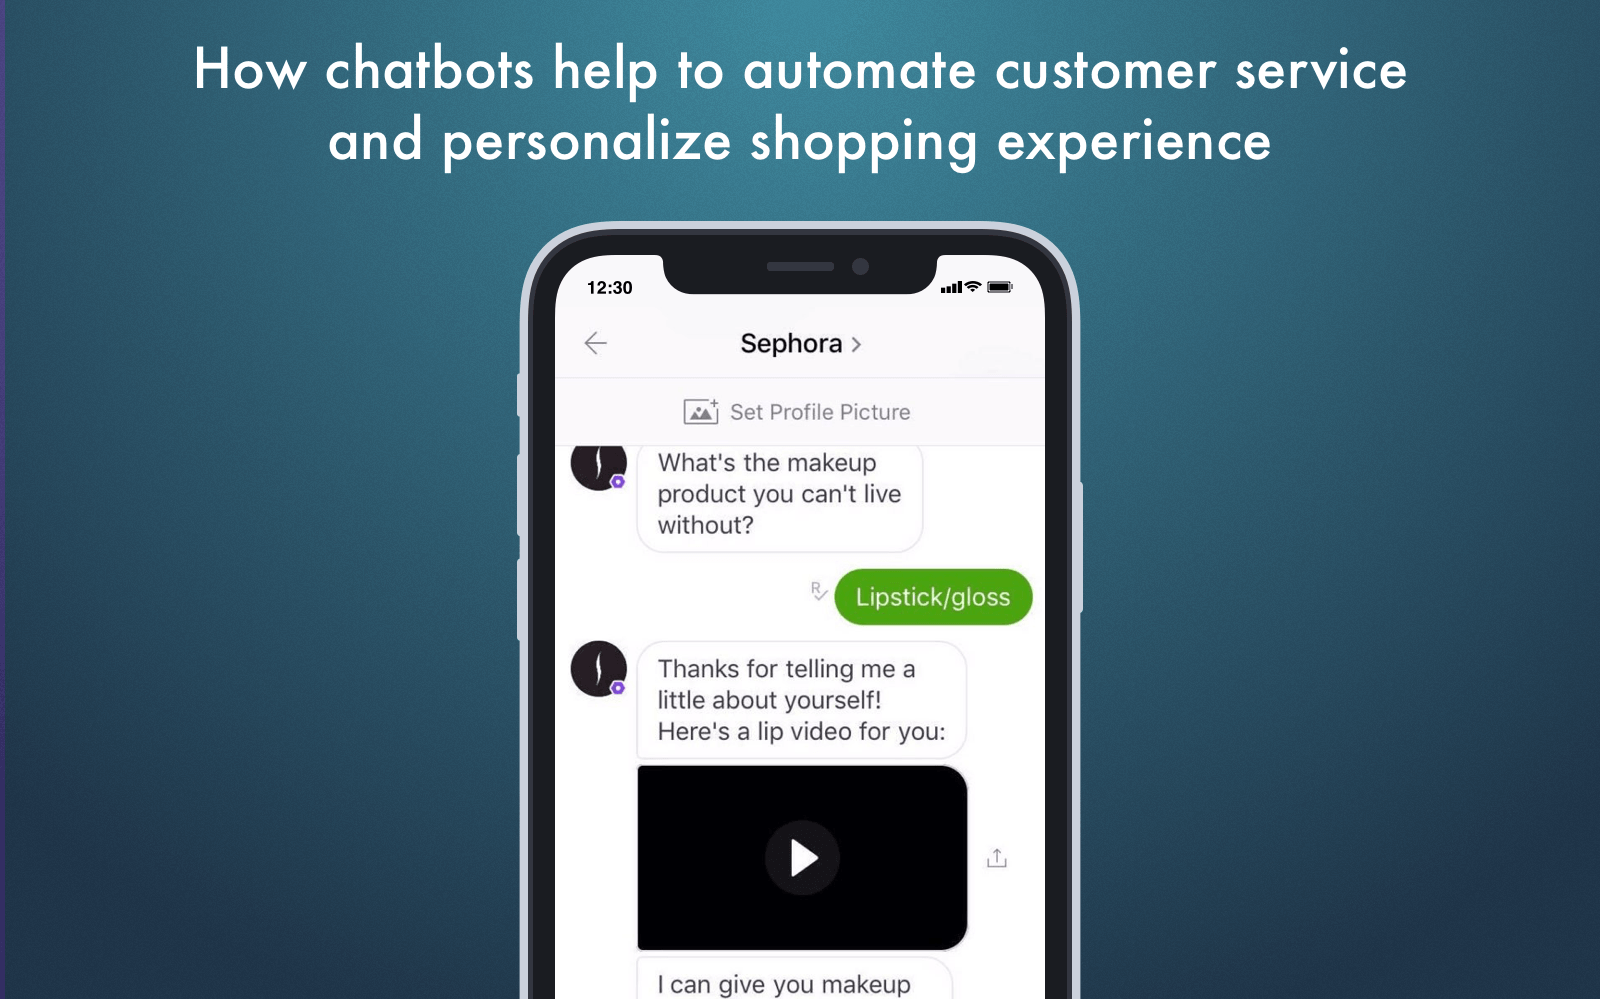 Mobile commerce trends 2018: chatbots